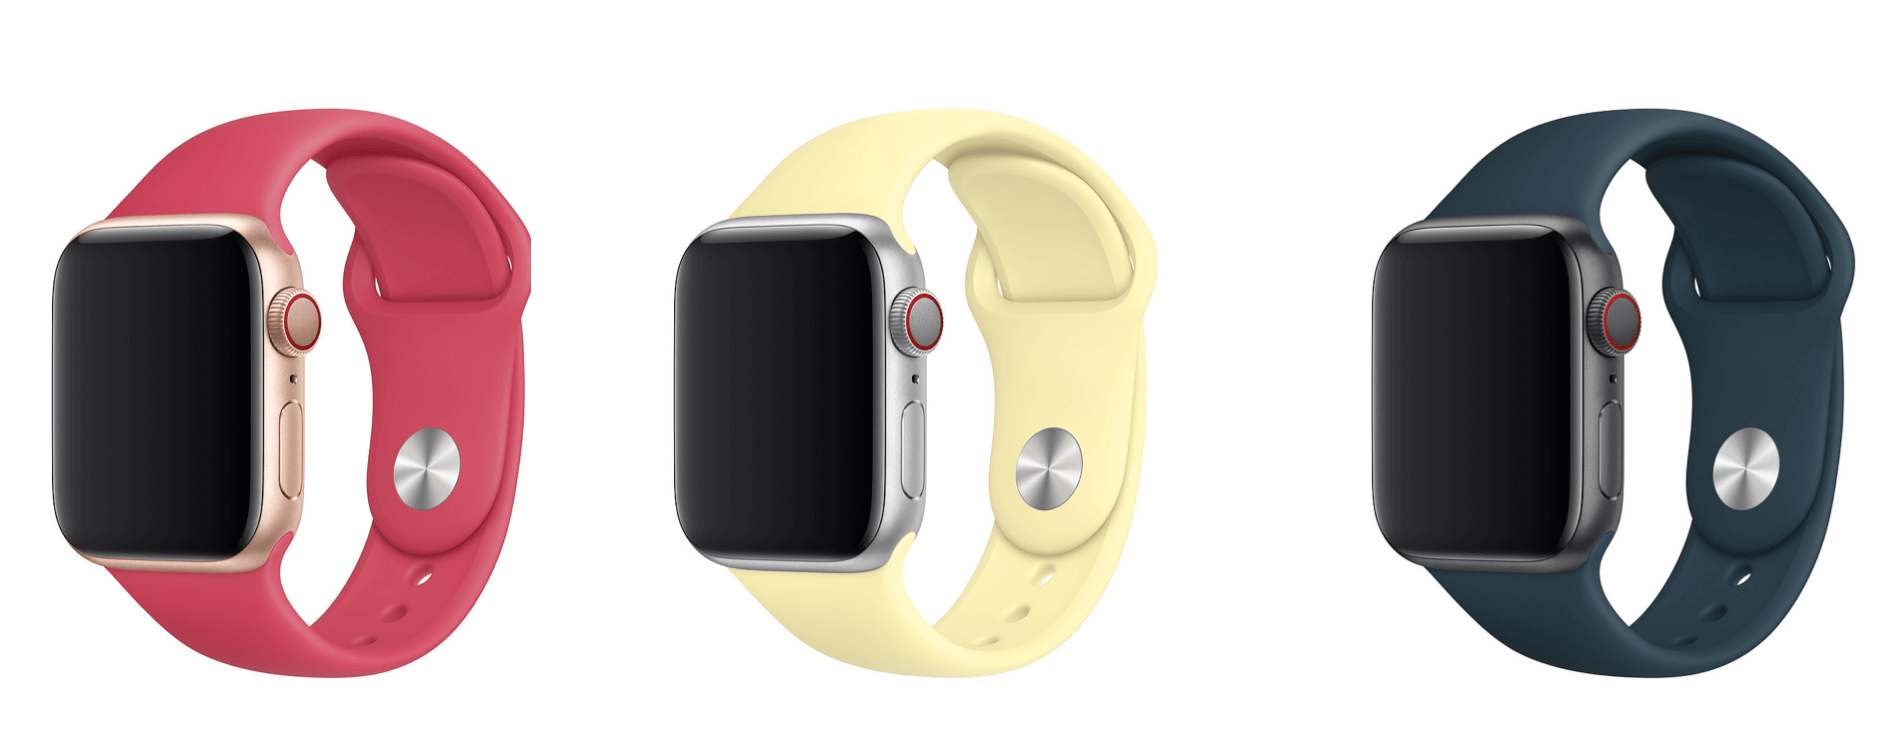 Nuevas Correas Apple Watch